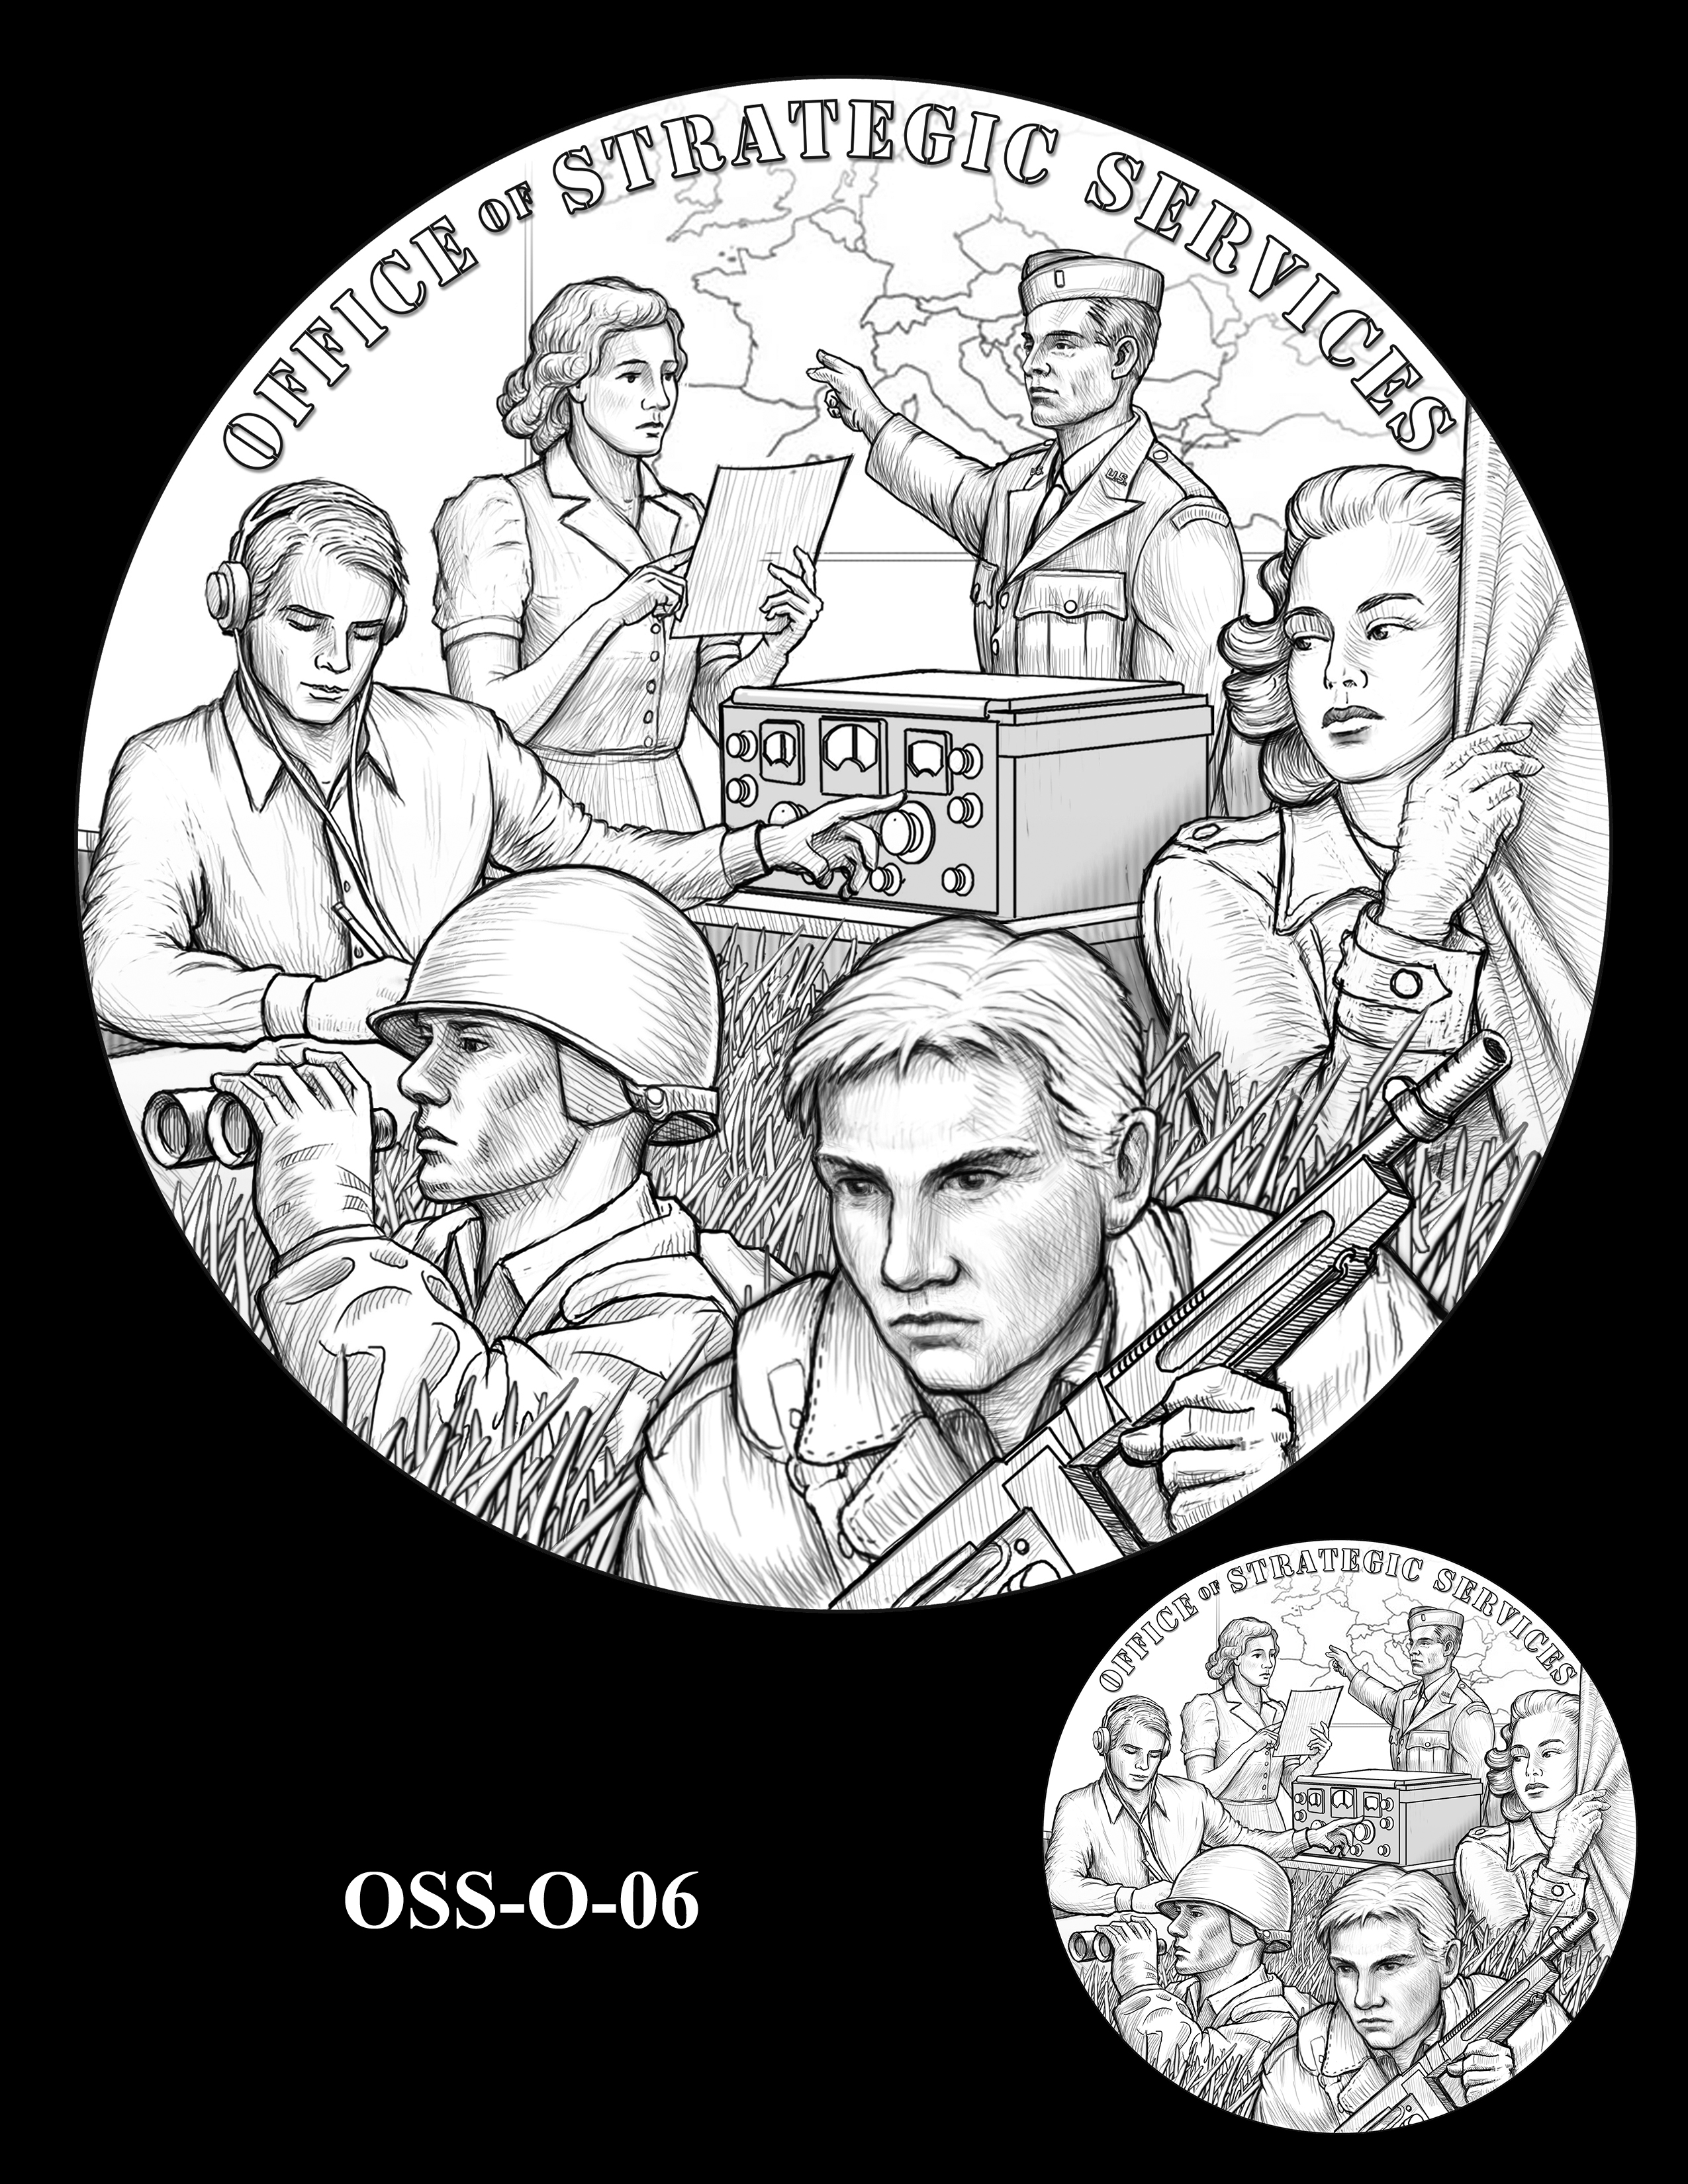 OSS-O-06 -- Office of Strategic Services Congressional Gold Medal